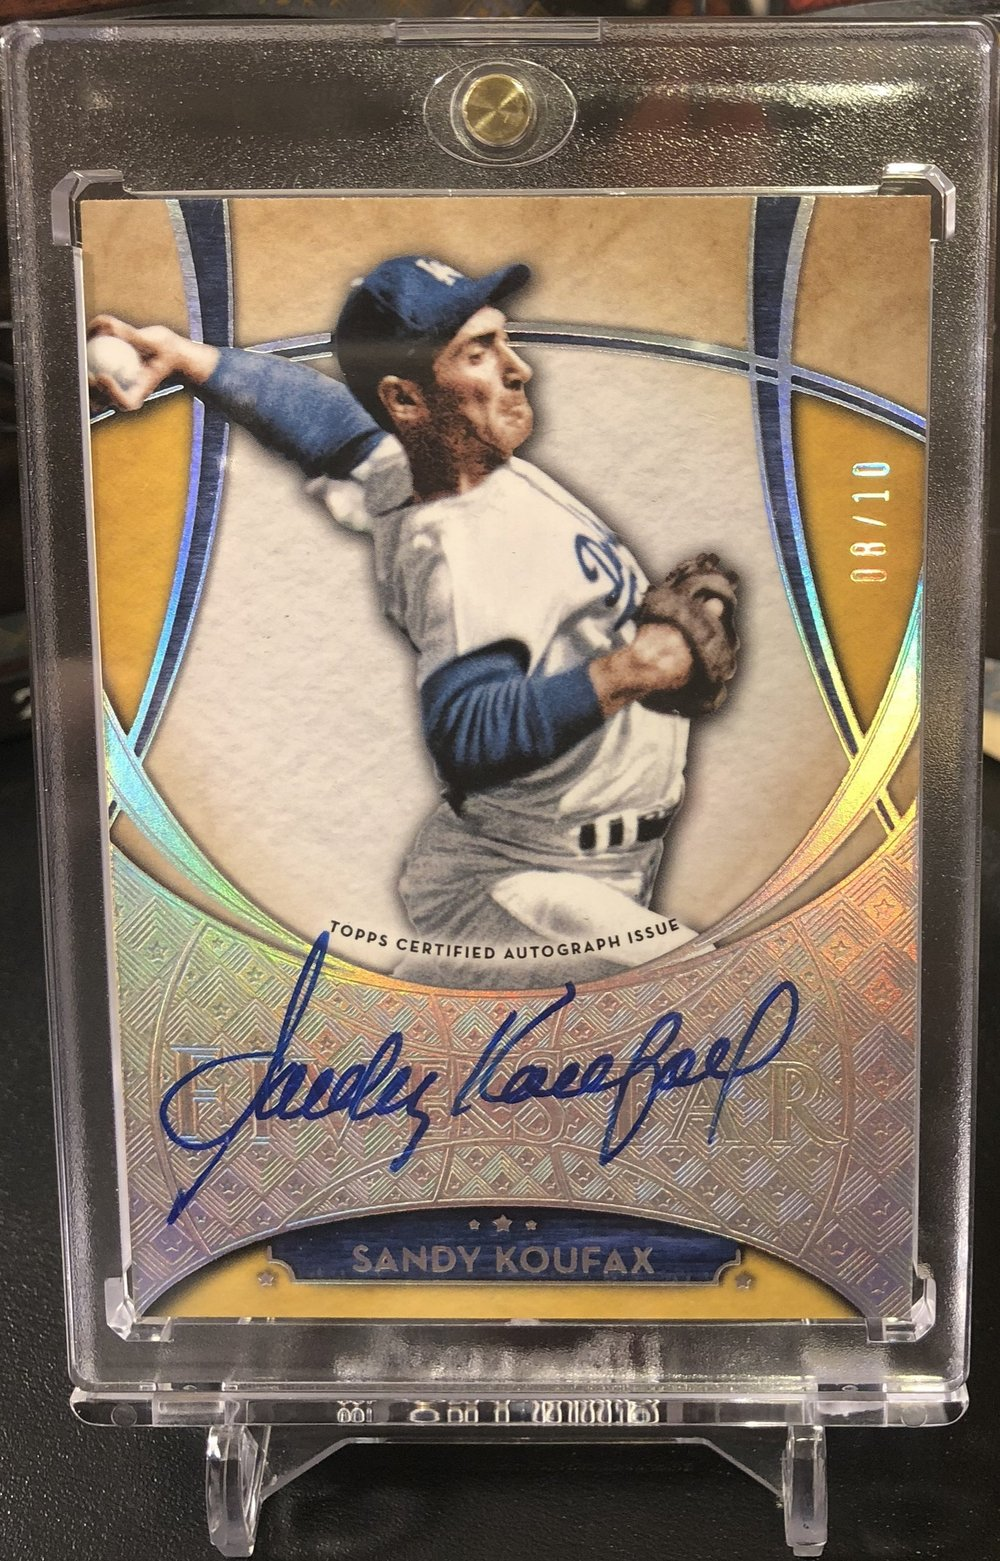 2017 Topps Five Star Sandy Koufax Auto /10